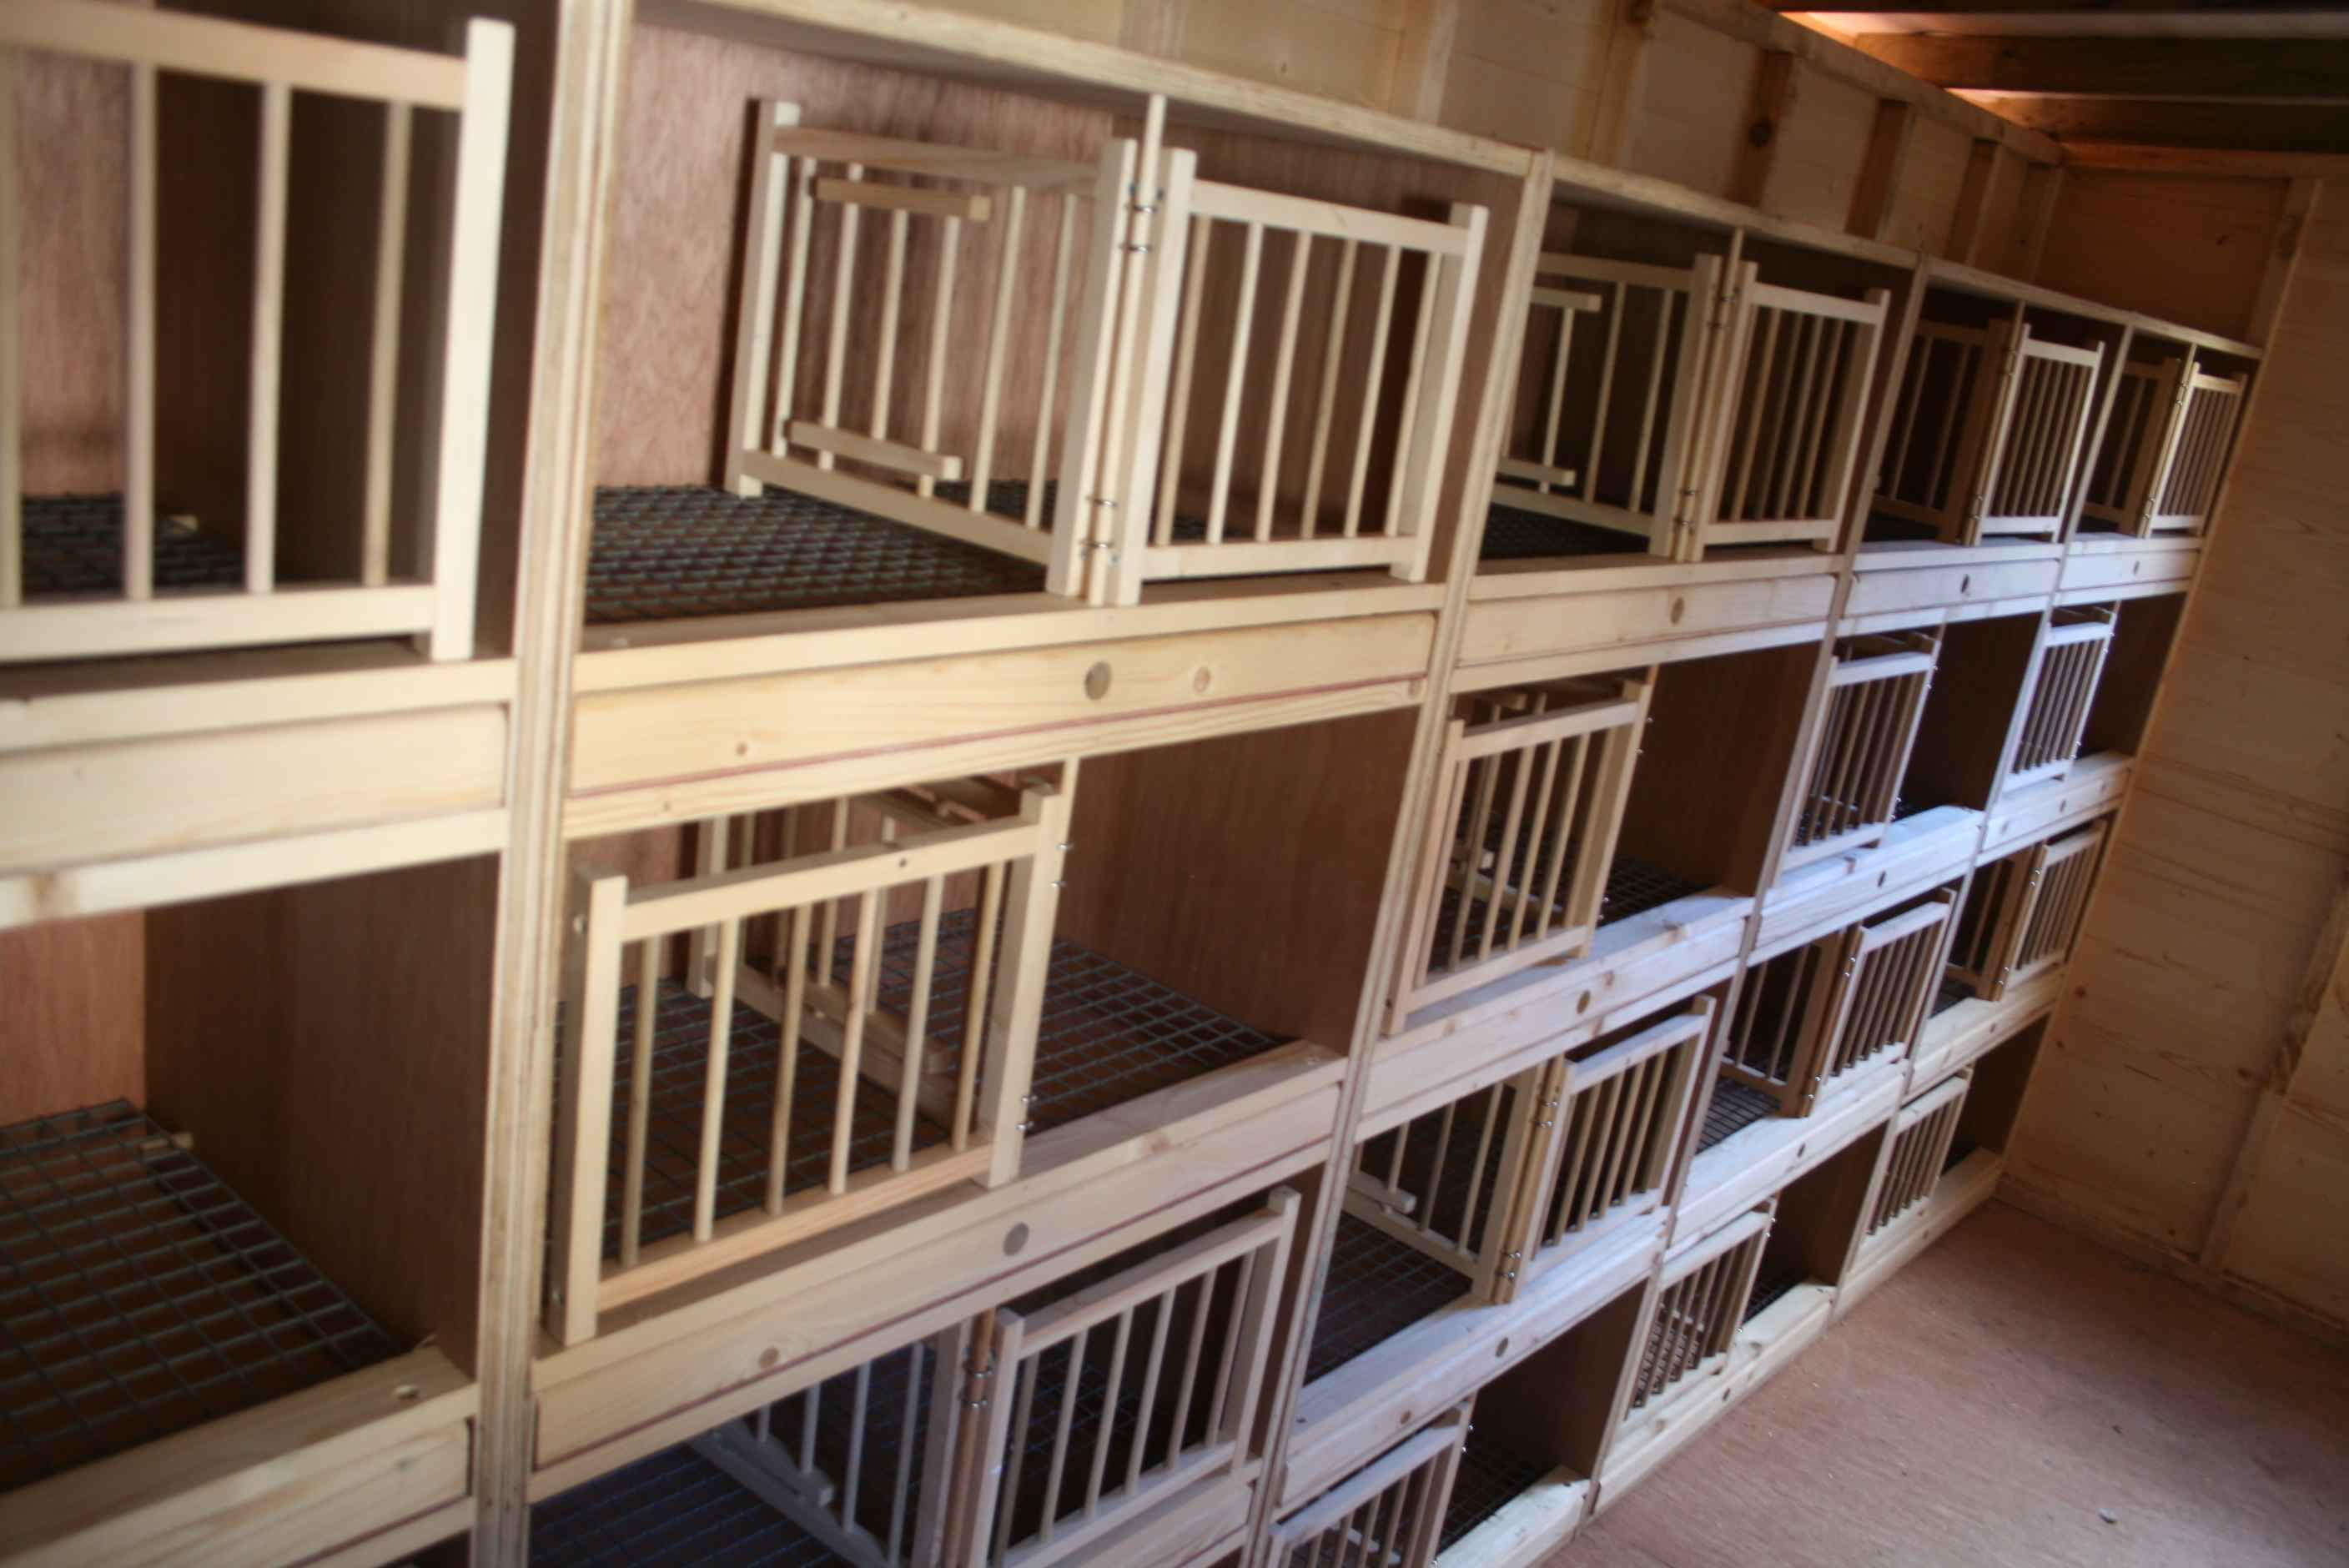 Pigeon house plans and photos - Pigeon Cage Design